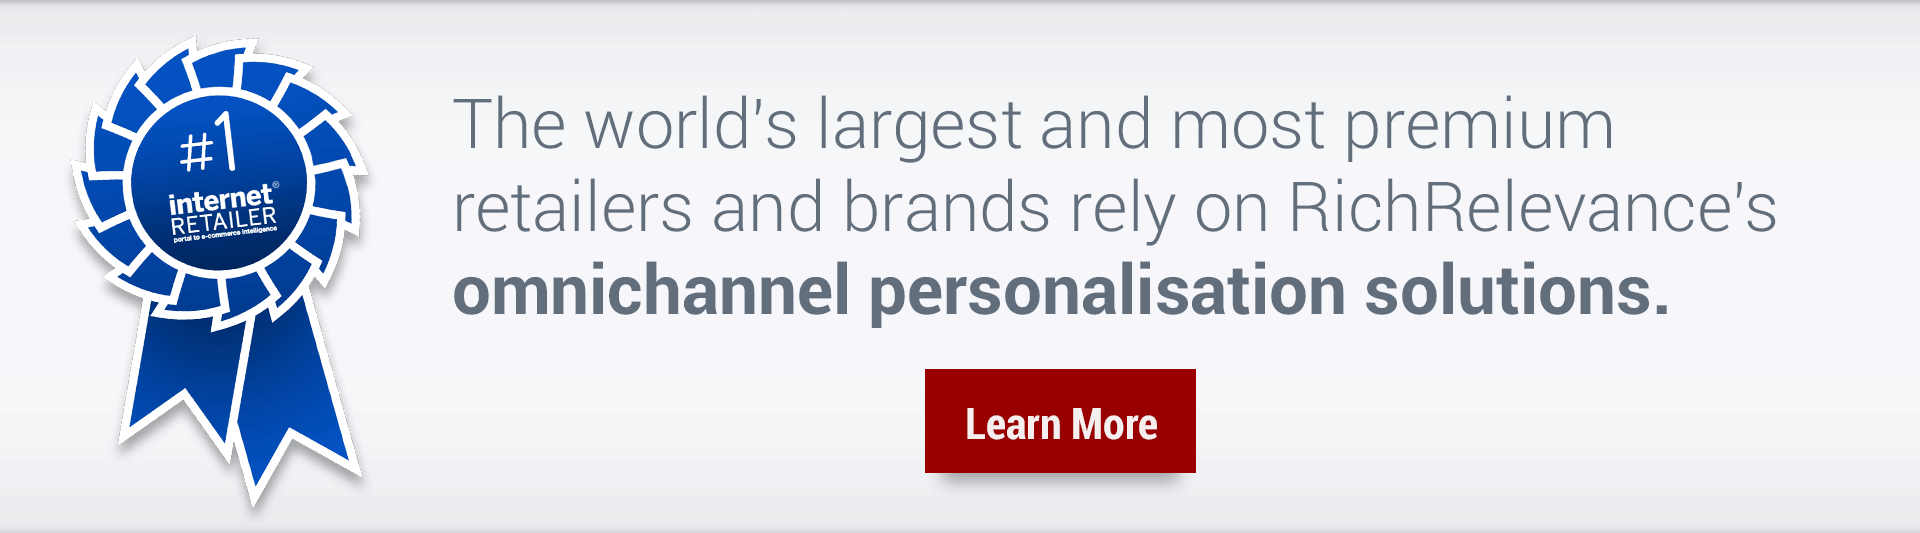 Learn more about RichRelevance's leading personalisation solutions